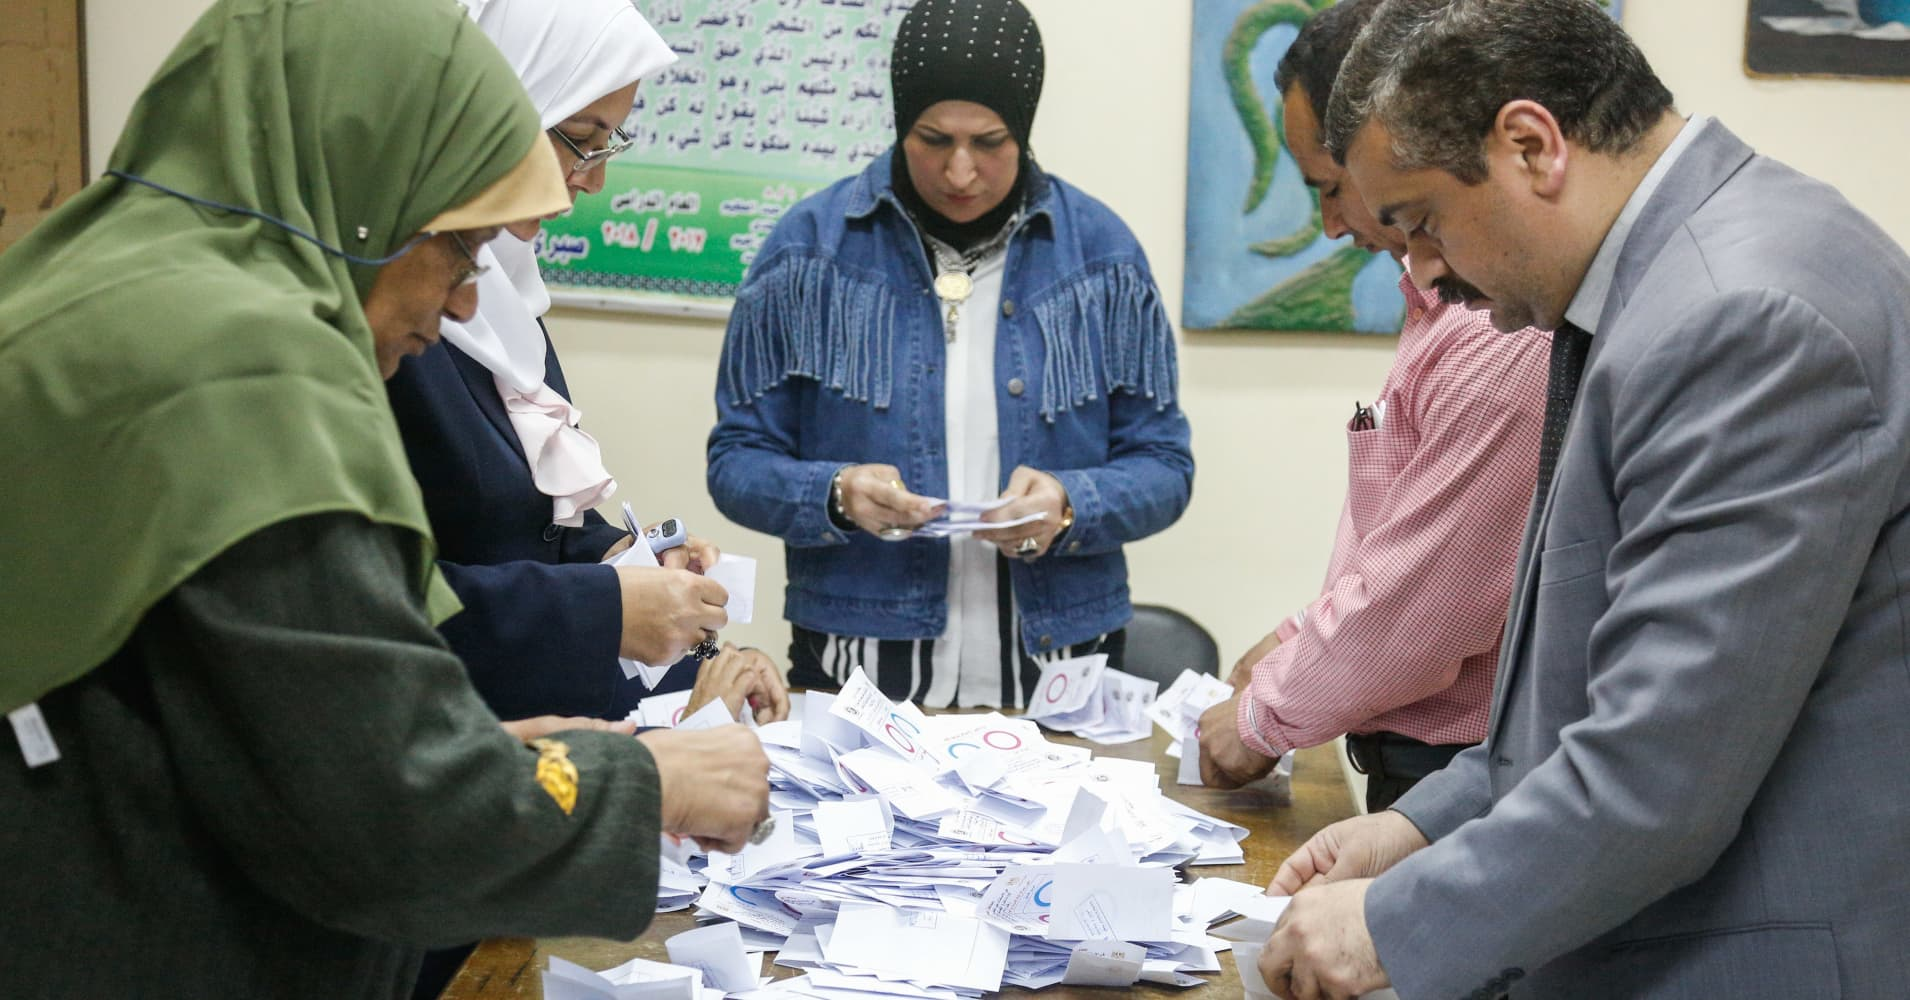 Egypt voters allow El-Sissi to remain president until 2030